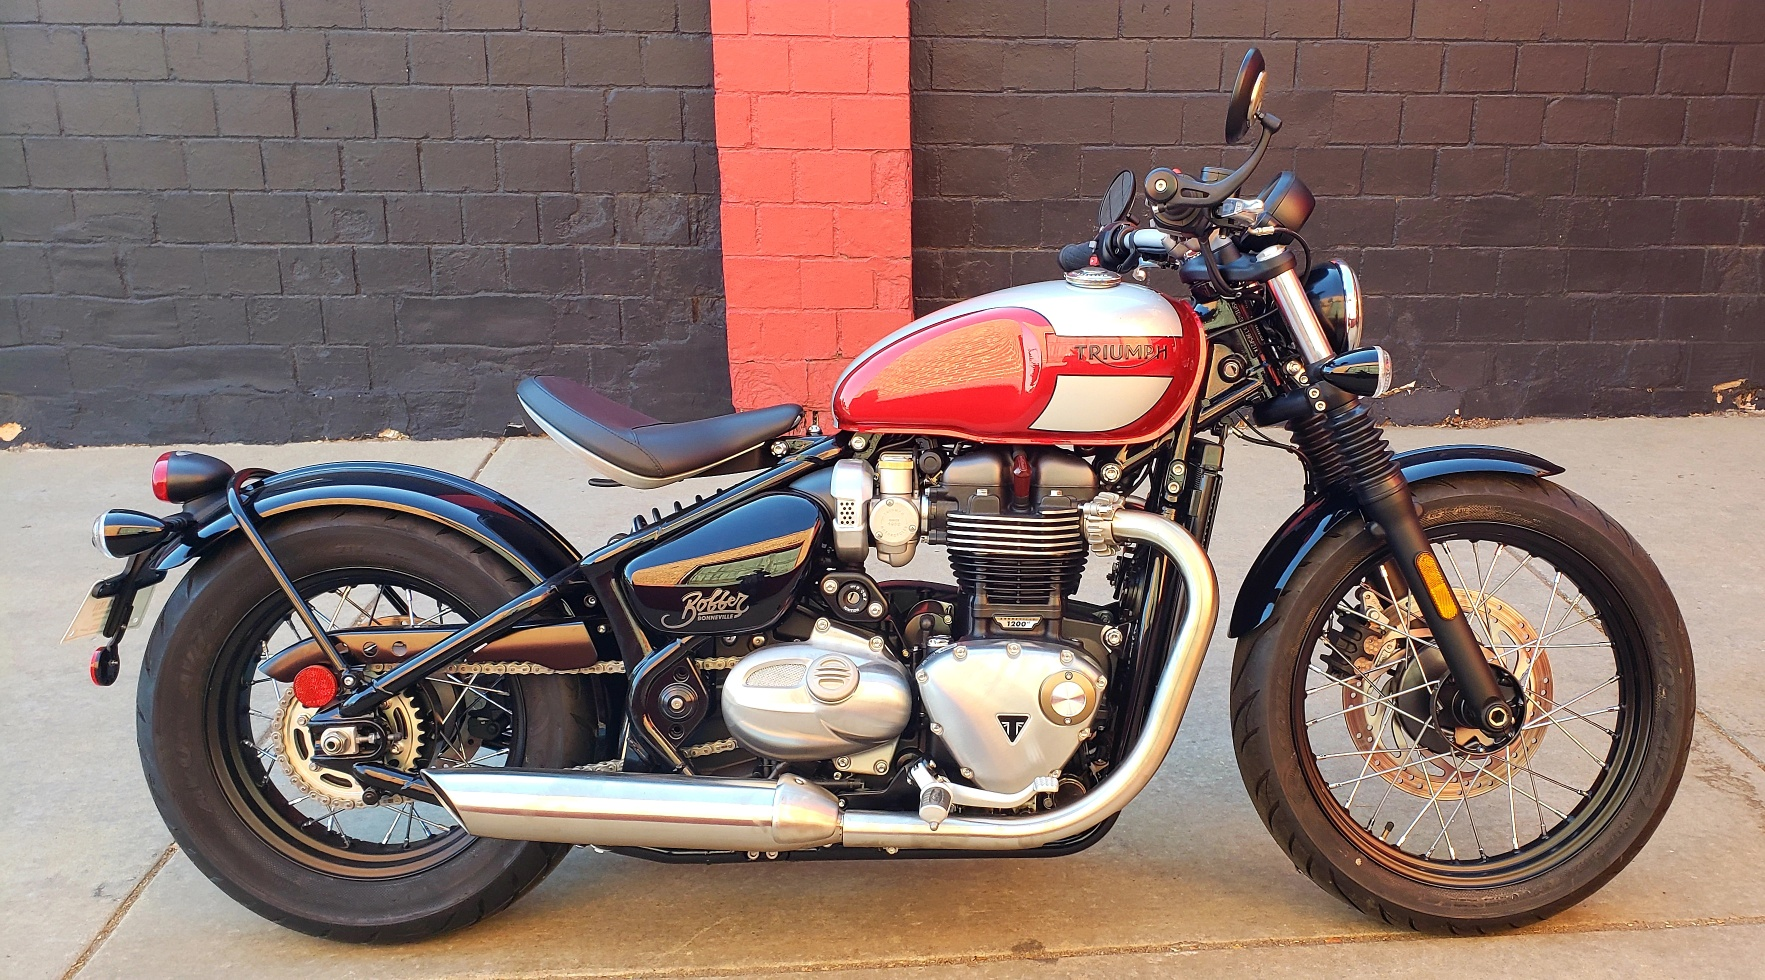 New 2019 Triumph Bonneville Bobber Motorcycle In Denver 18t72